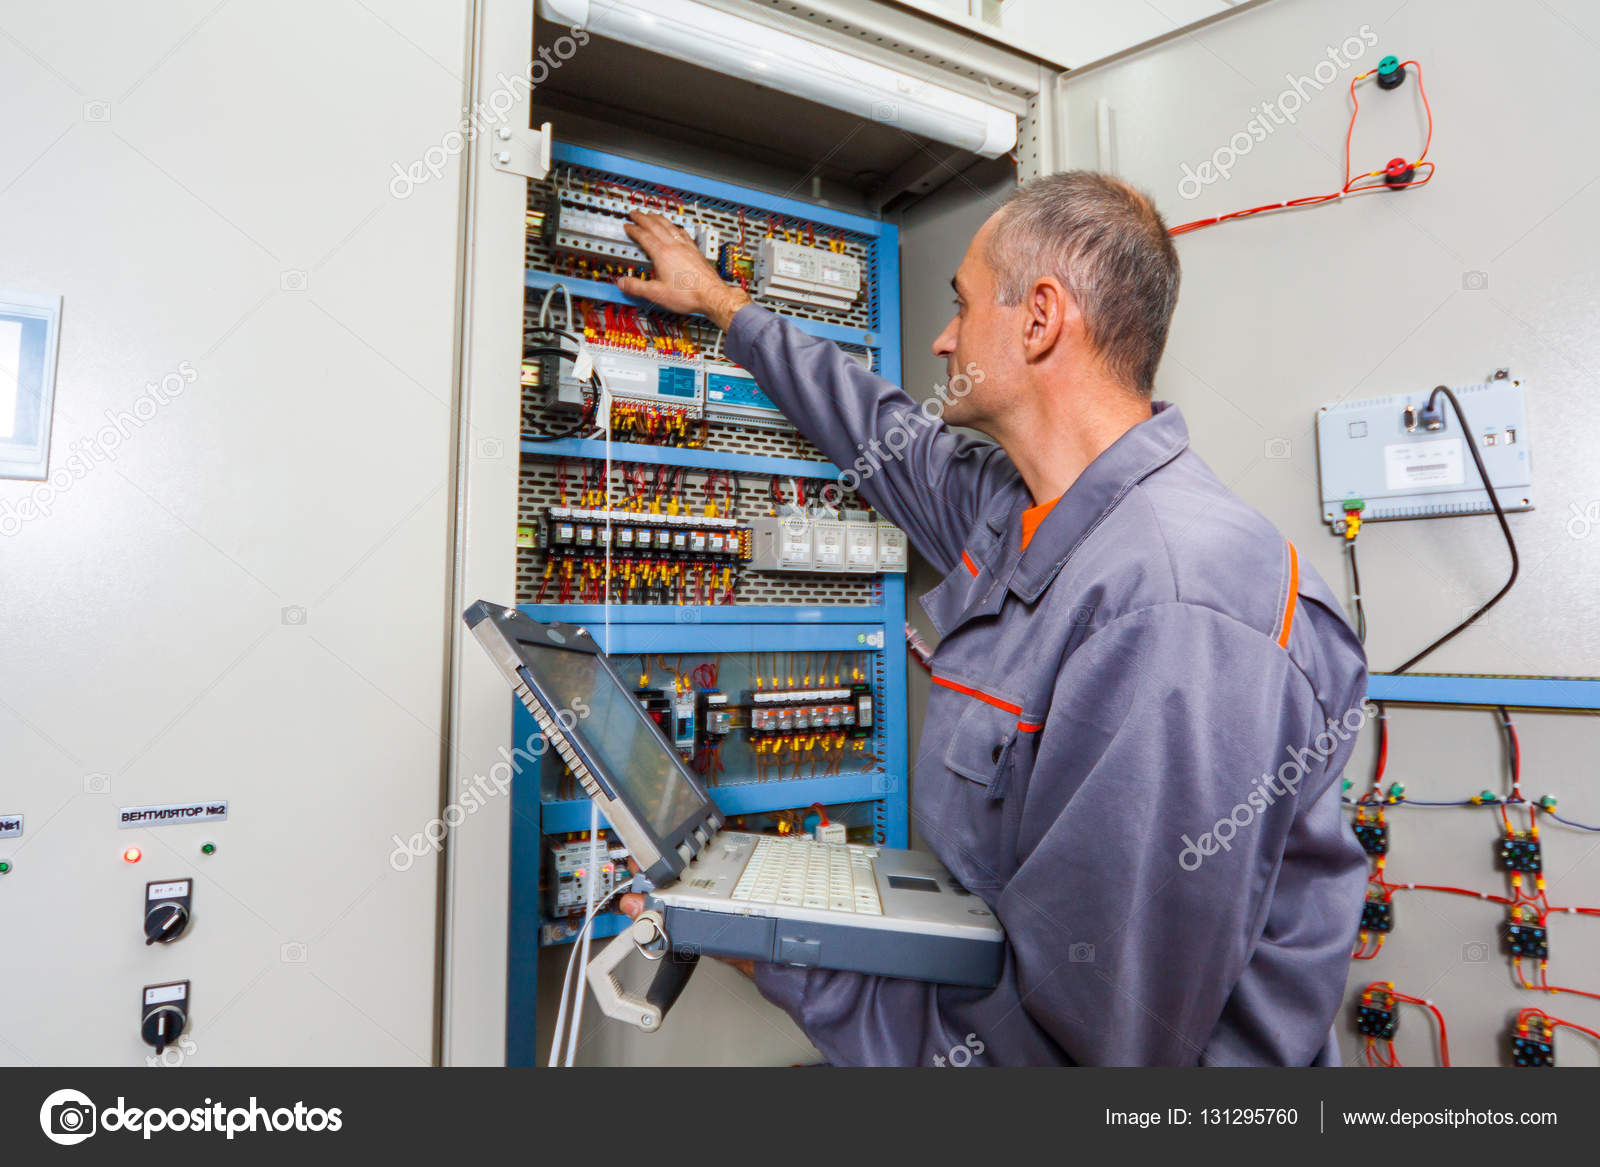 Electrician Testing Industrial Machine Builder Engineer Fuse Box Electrical Screwing Equipment In Male